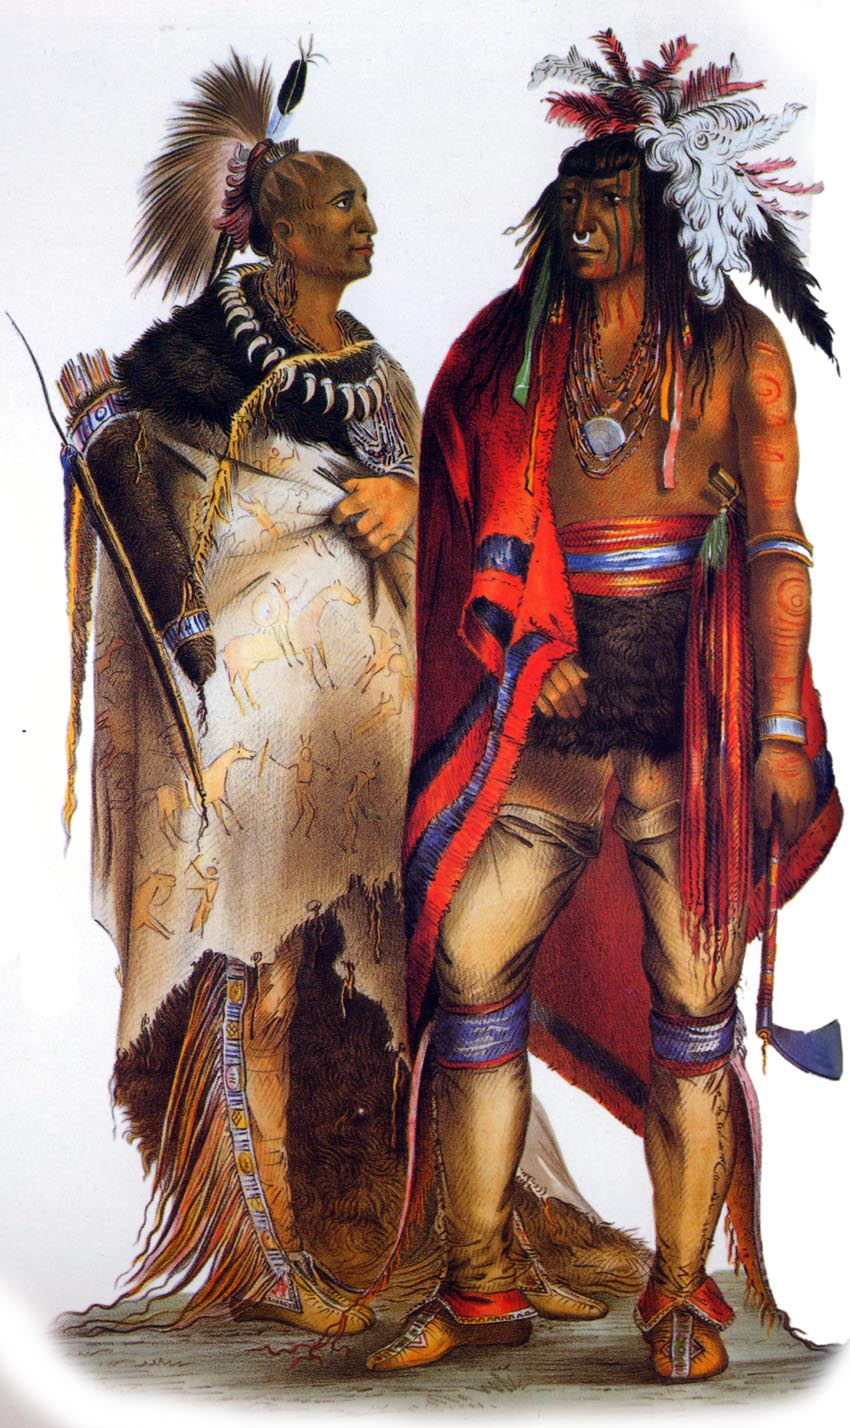 woodland indians: iroquois and algonquin - 8 humanities